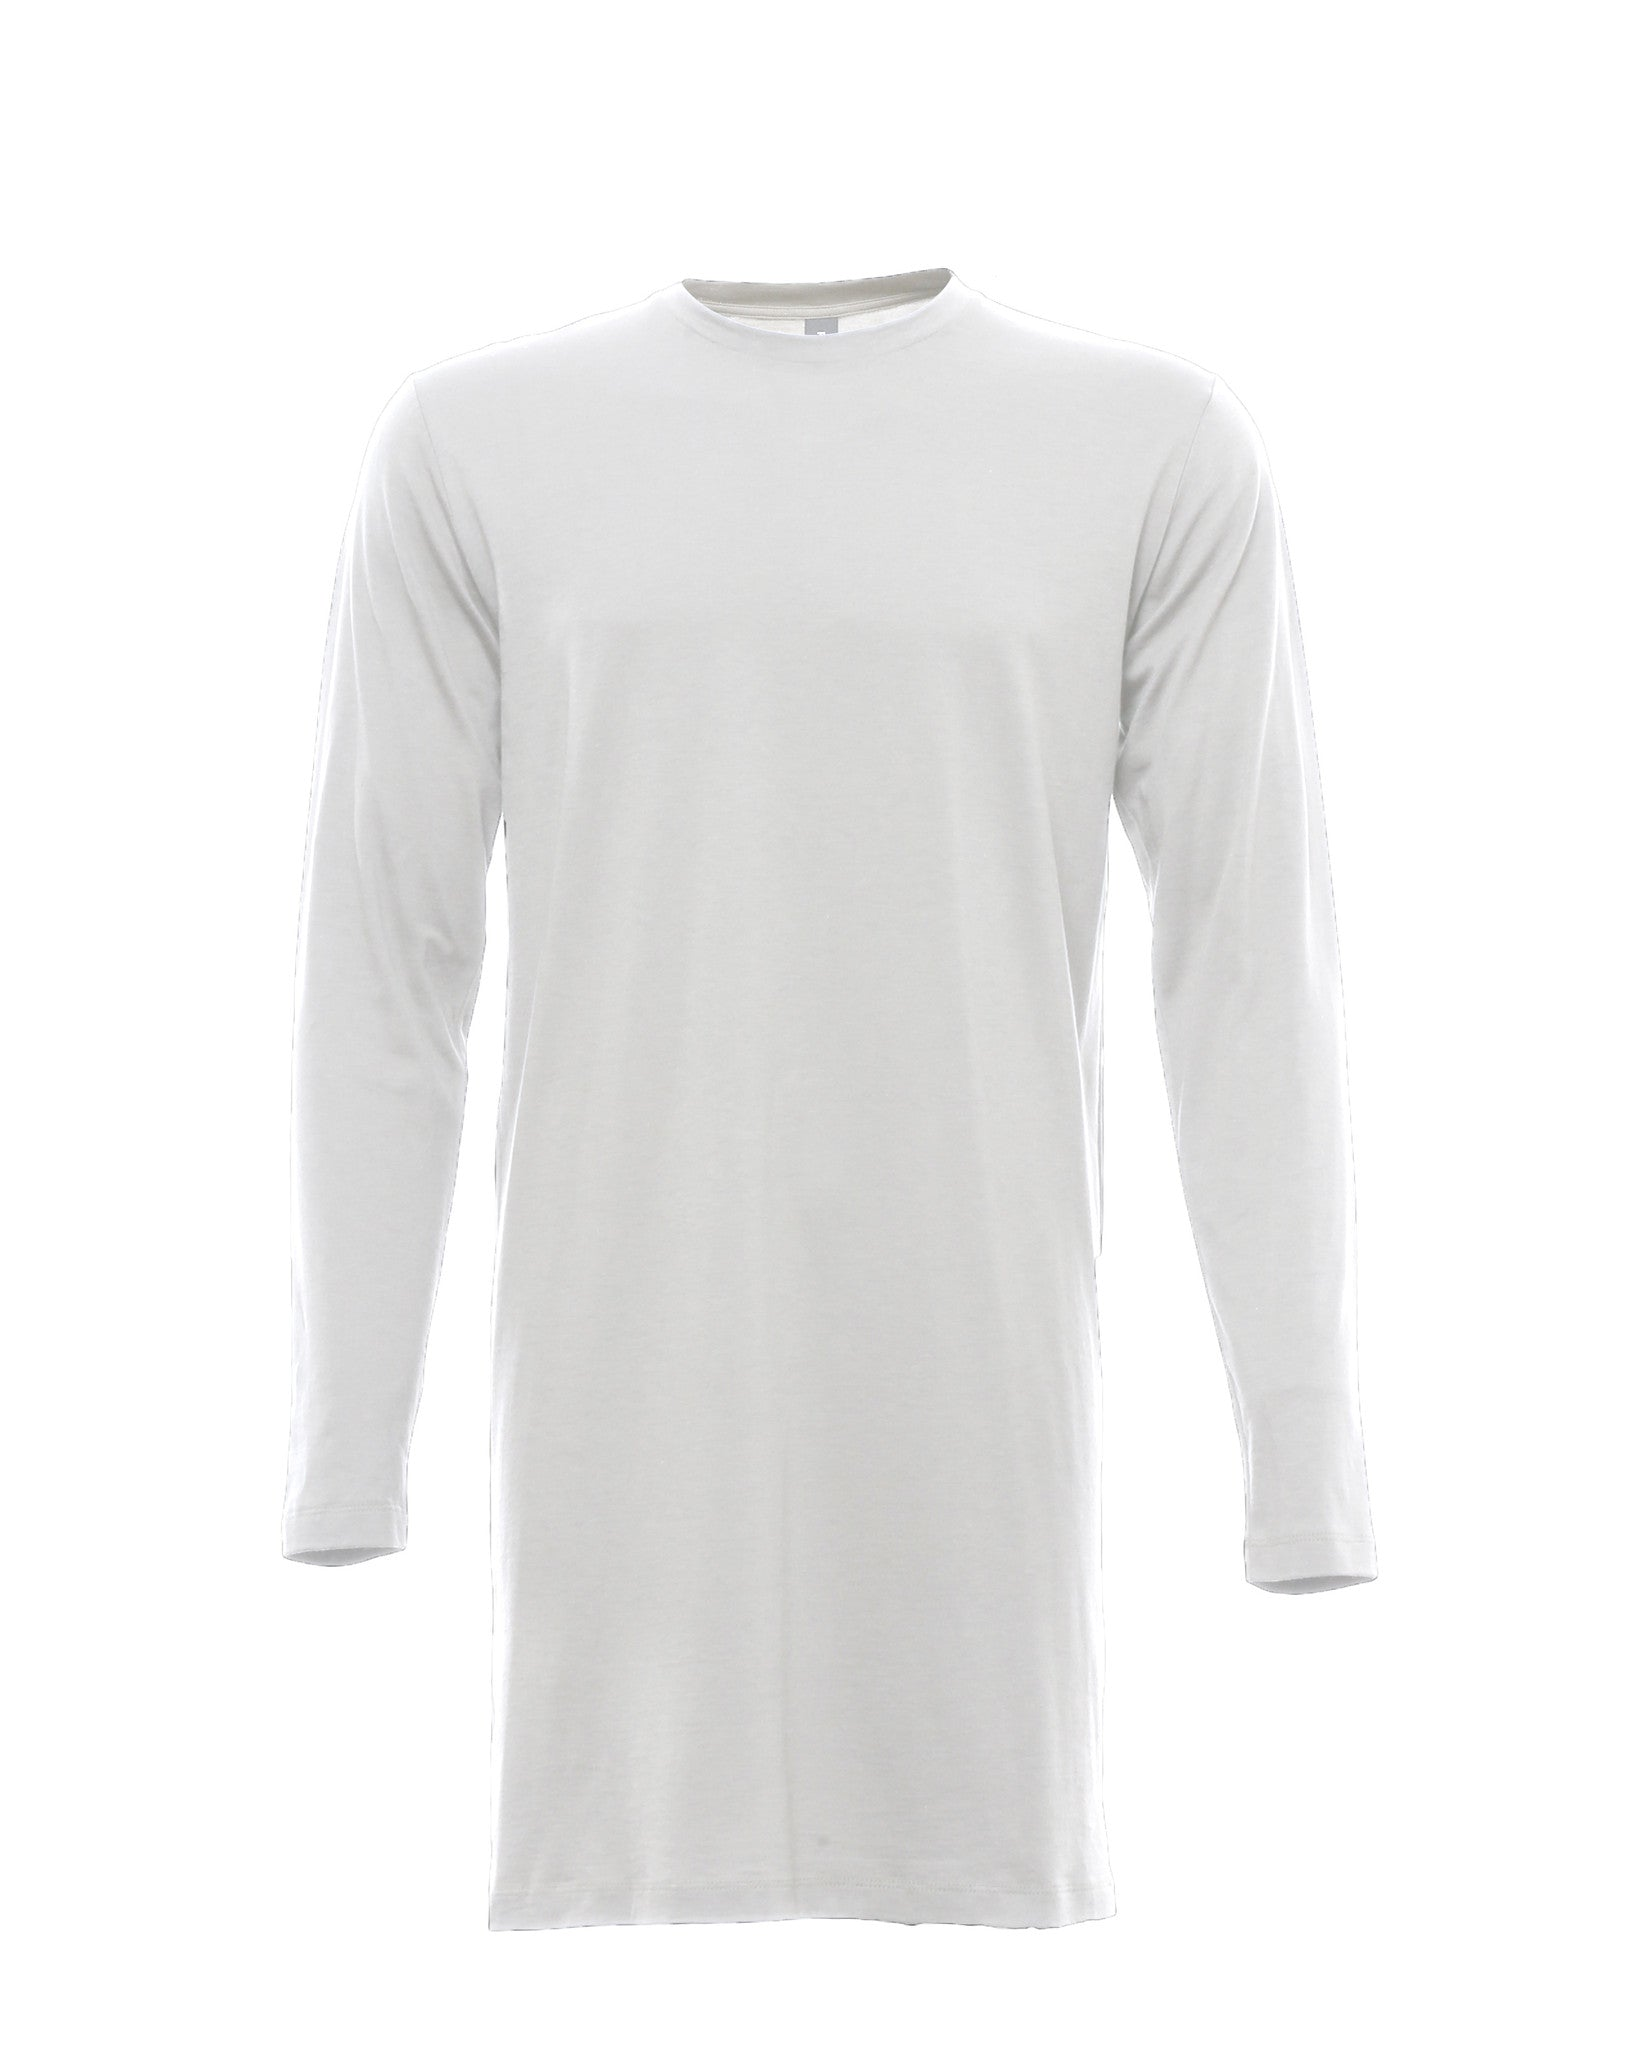 Long Line Jersey in White